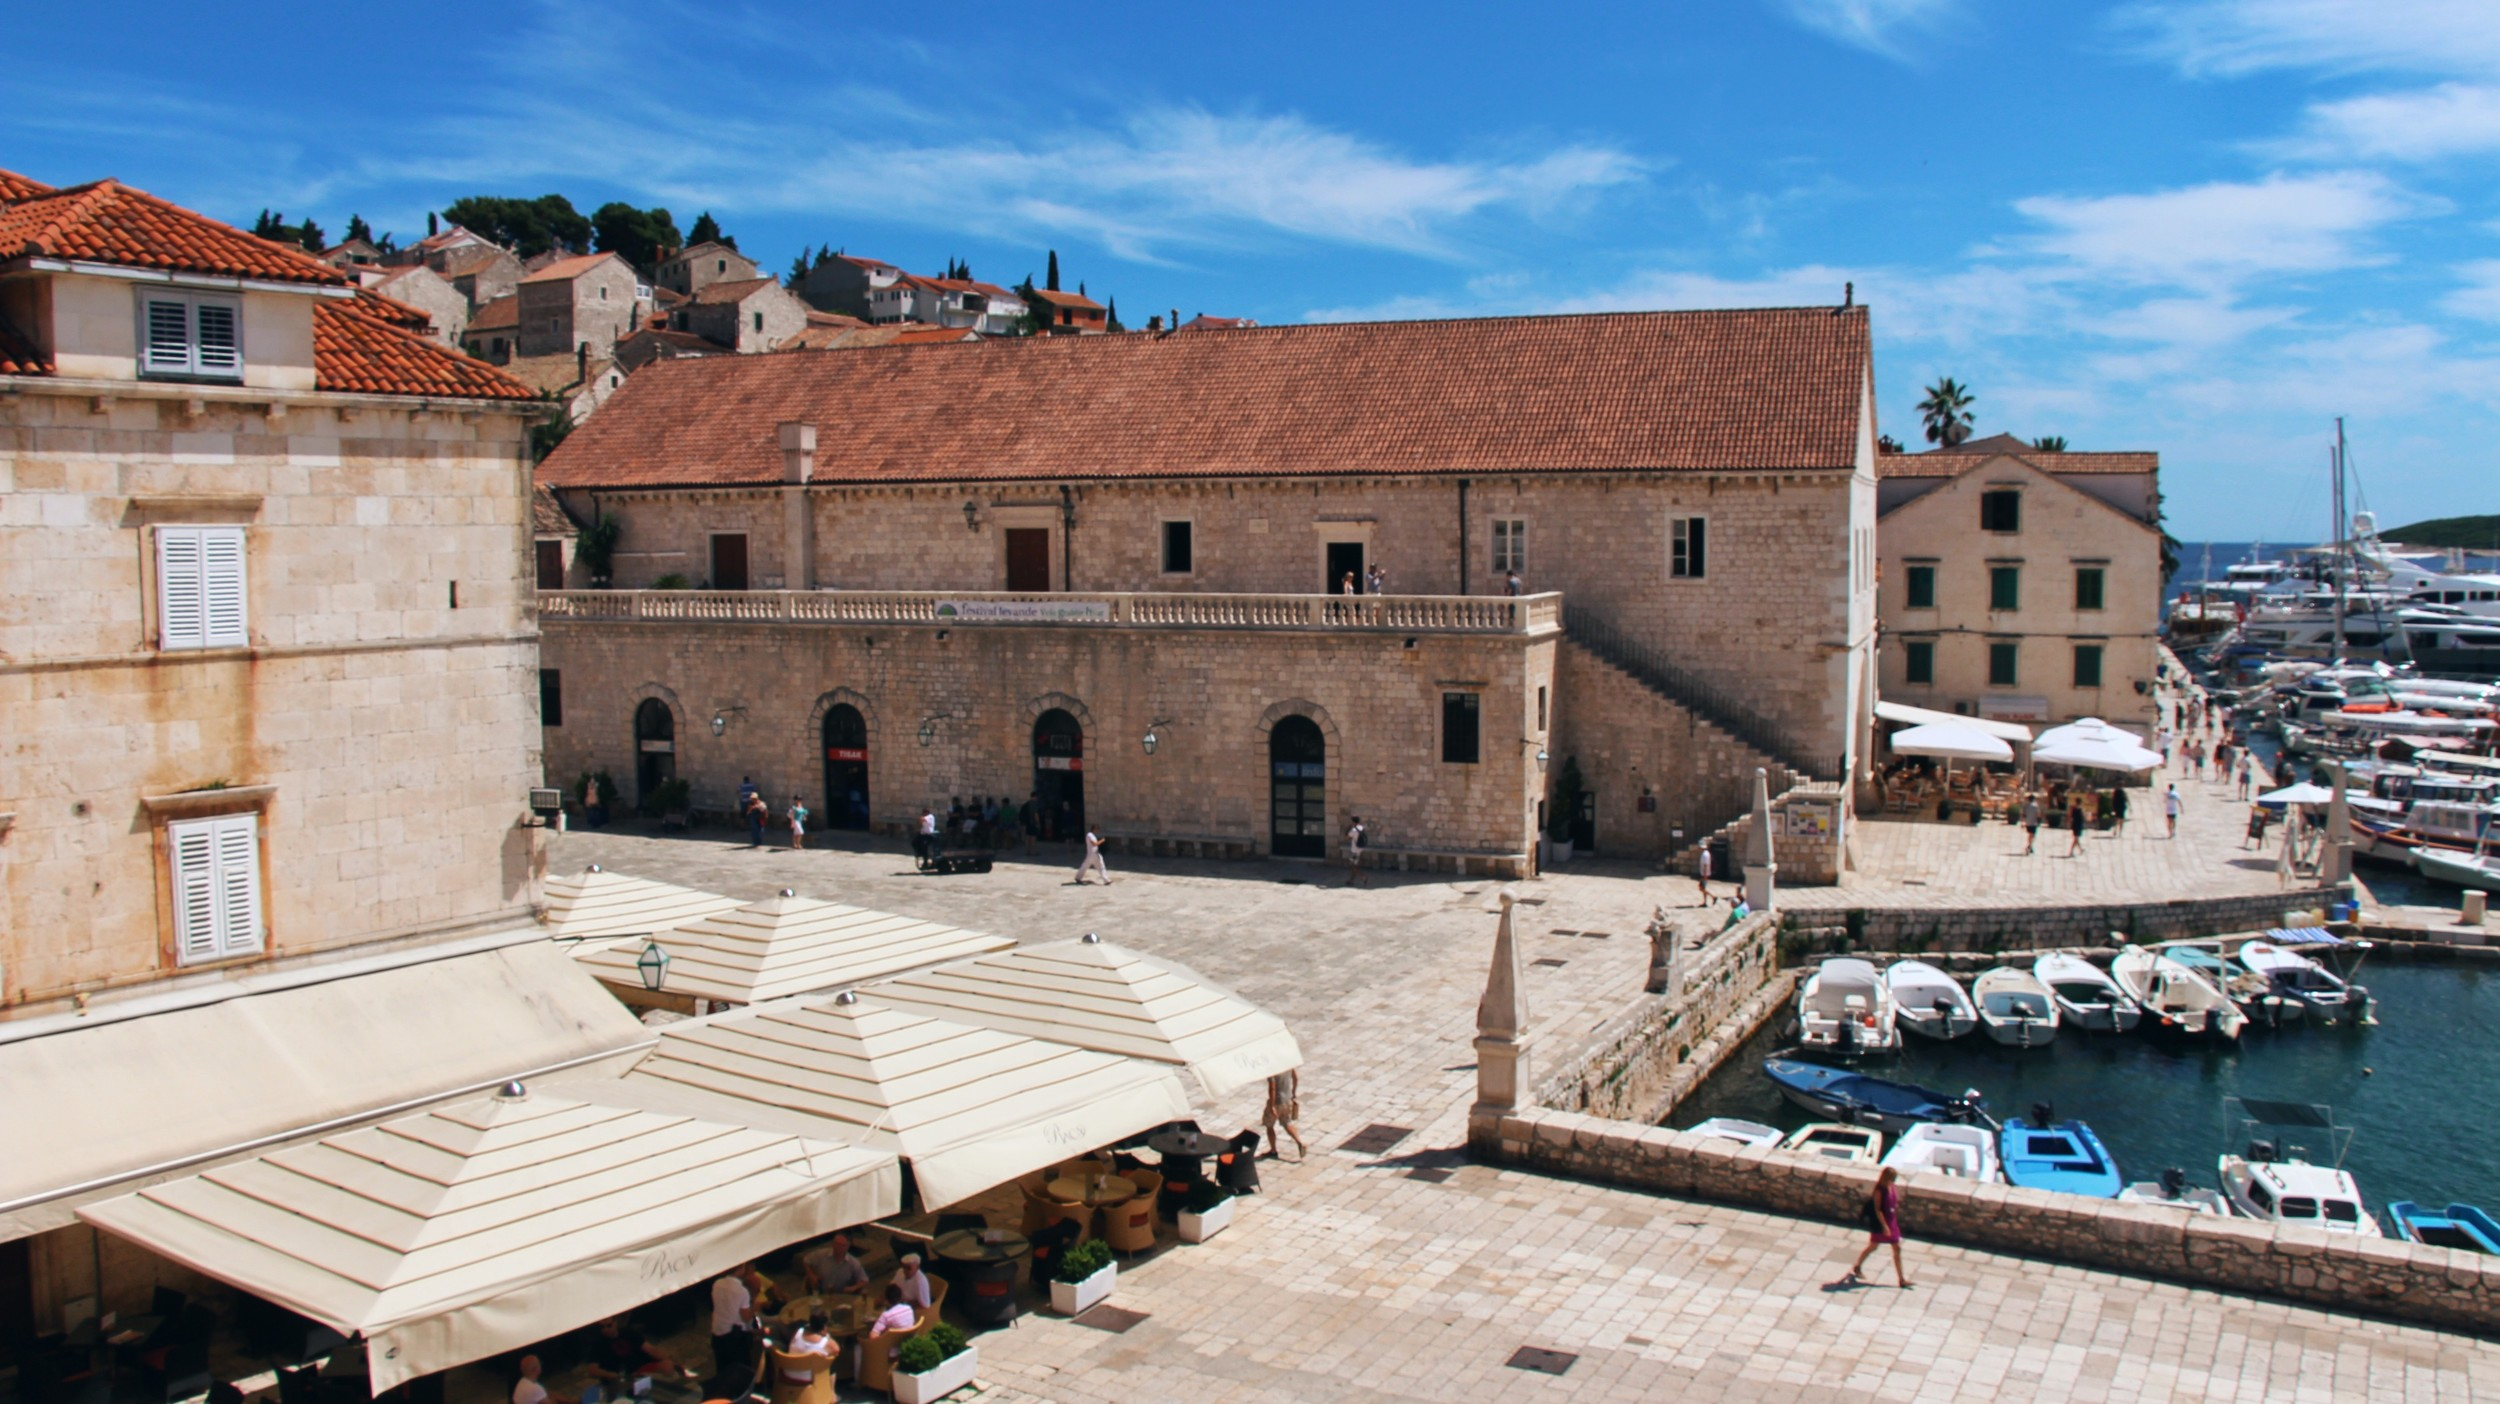 Aerial view of Hvar town